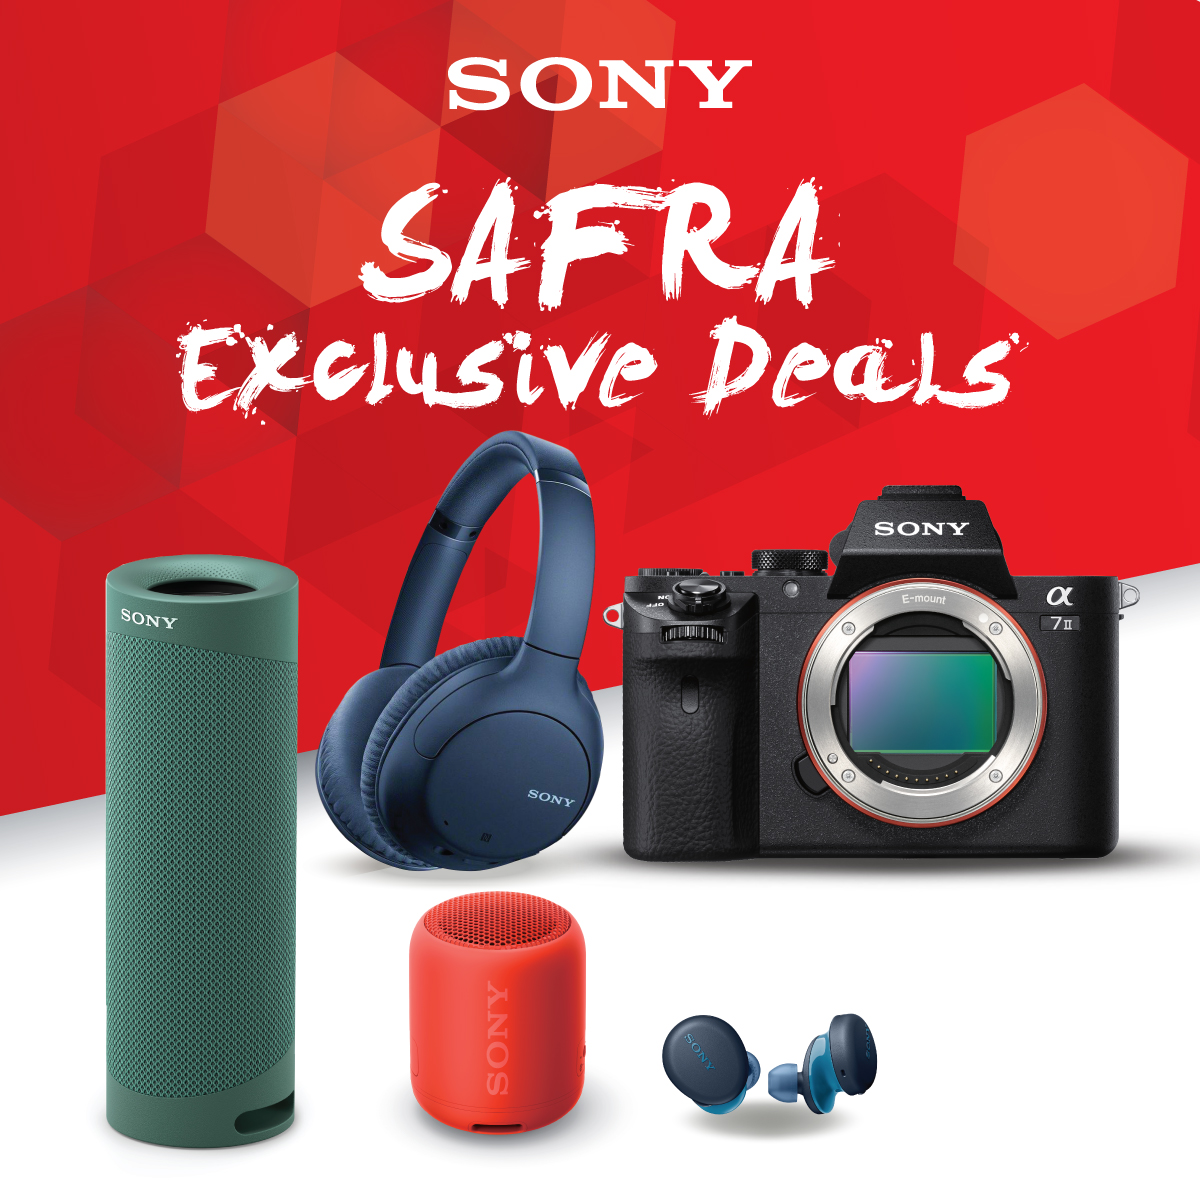 SONY - Up to 50% Off Selected Sony Camera, Audio and TV Products